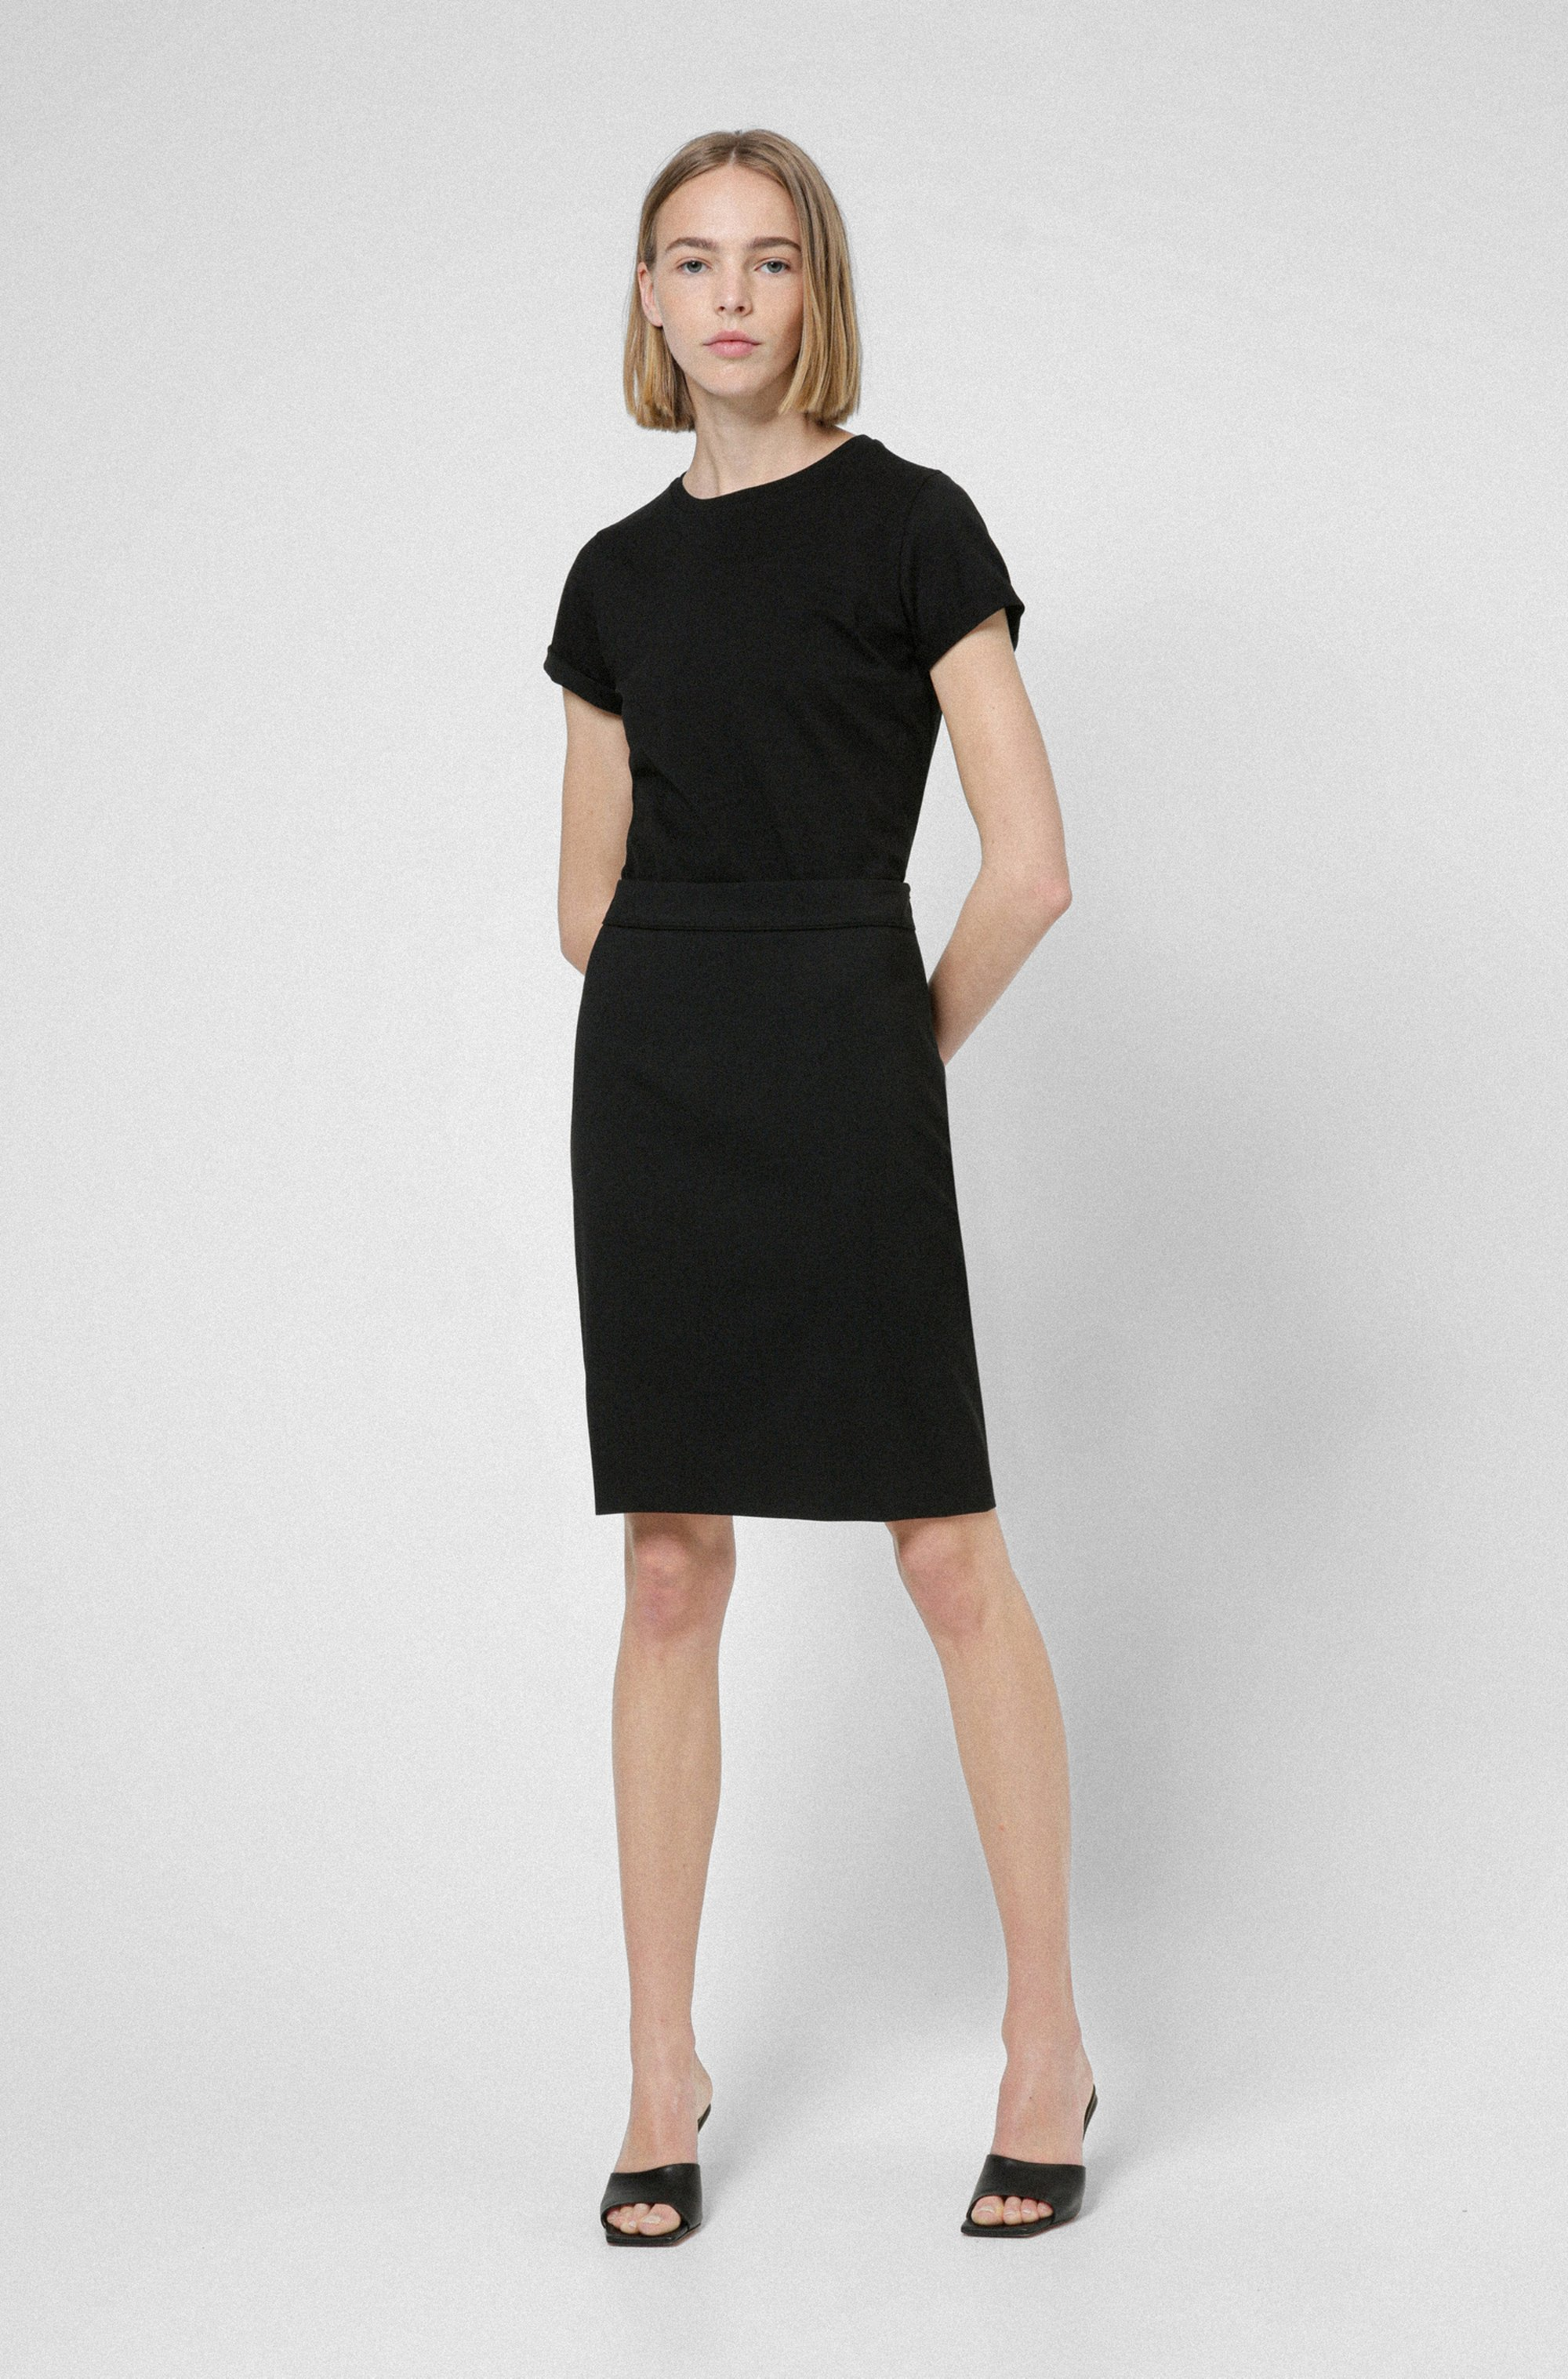 High-waisted pencil skirt in worsted stretch virgin wool